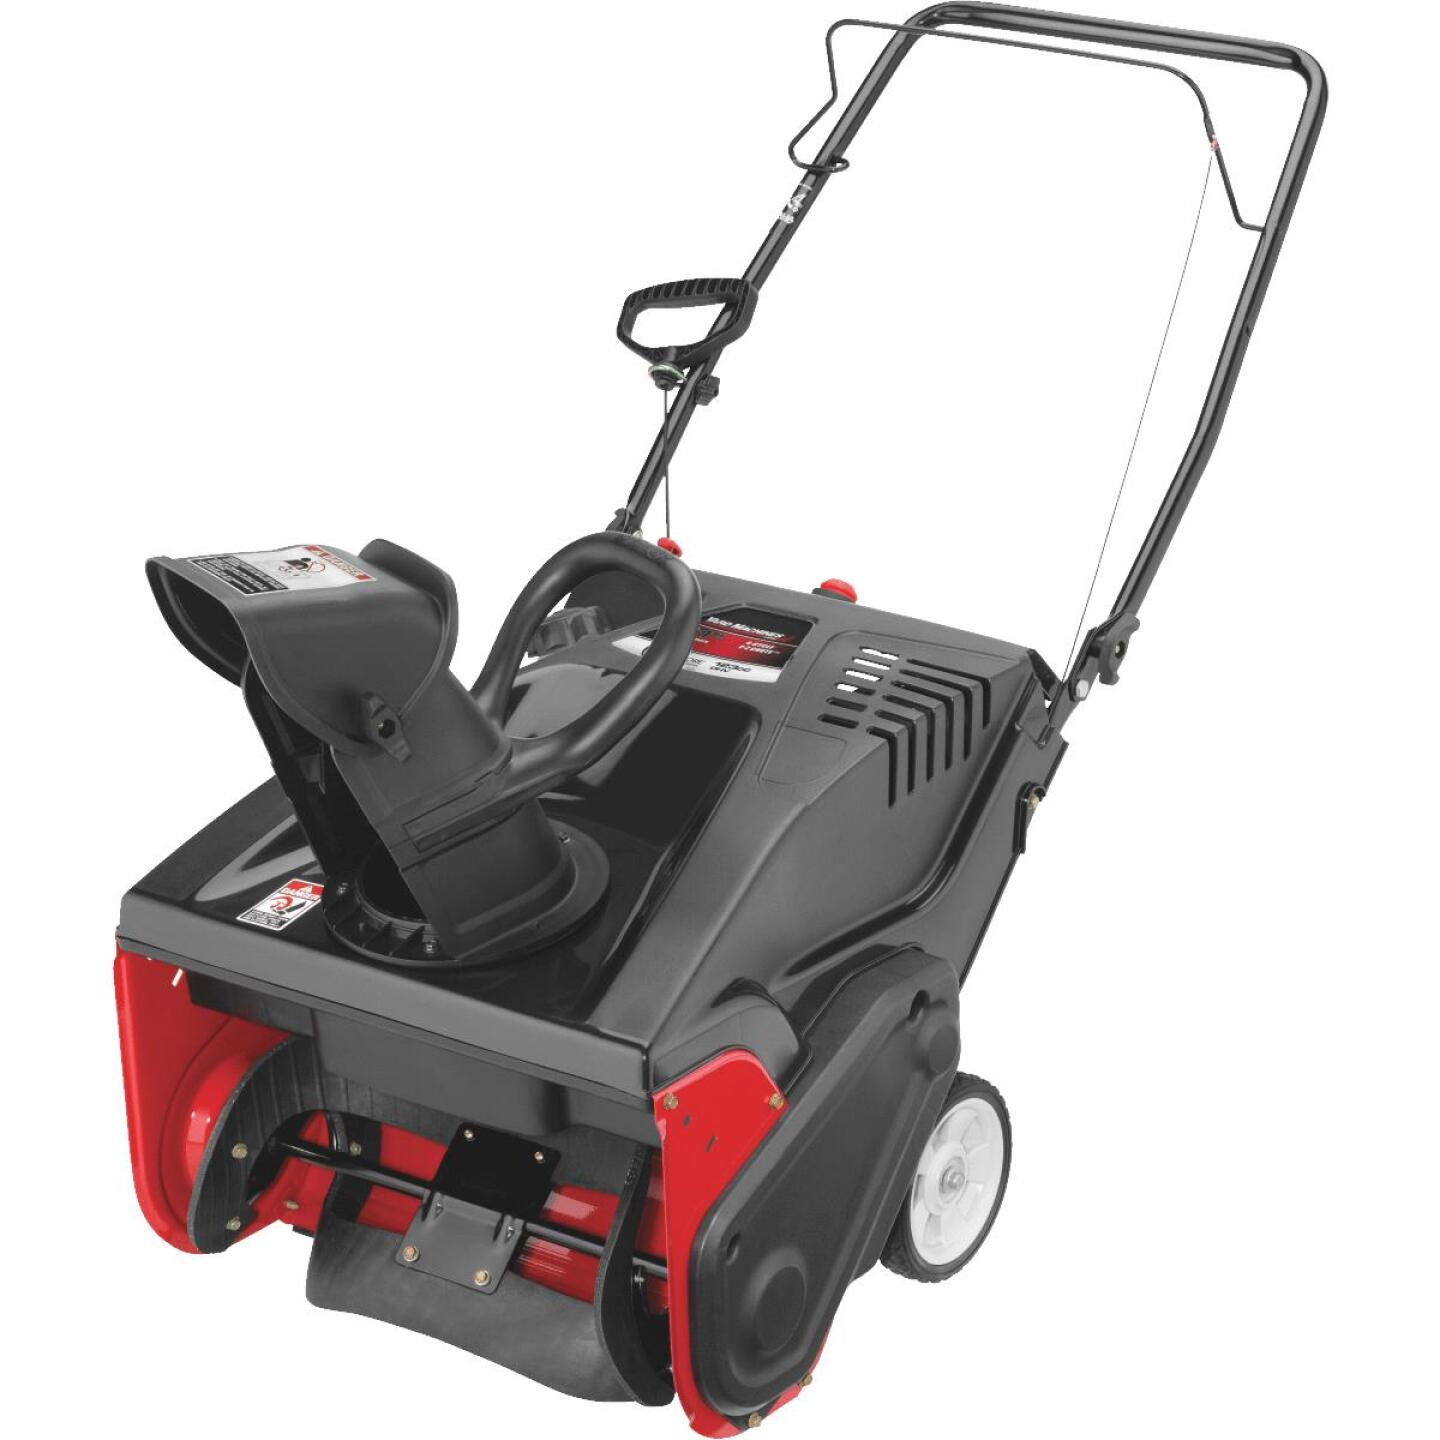 Troy-Bilt 21 In. 123cc Single-Stage Gas Snow Blower Image 2